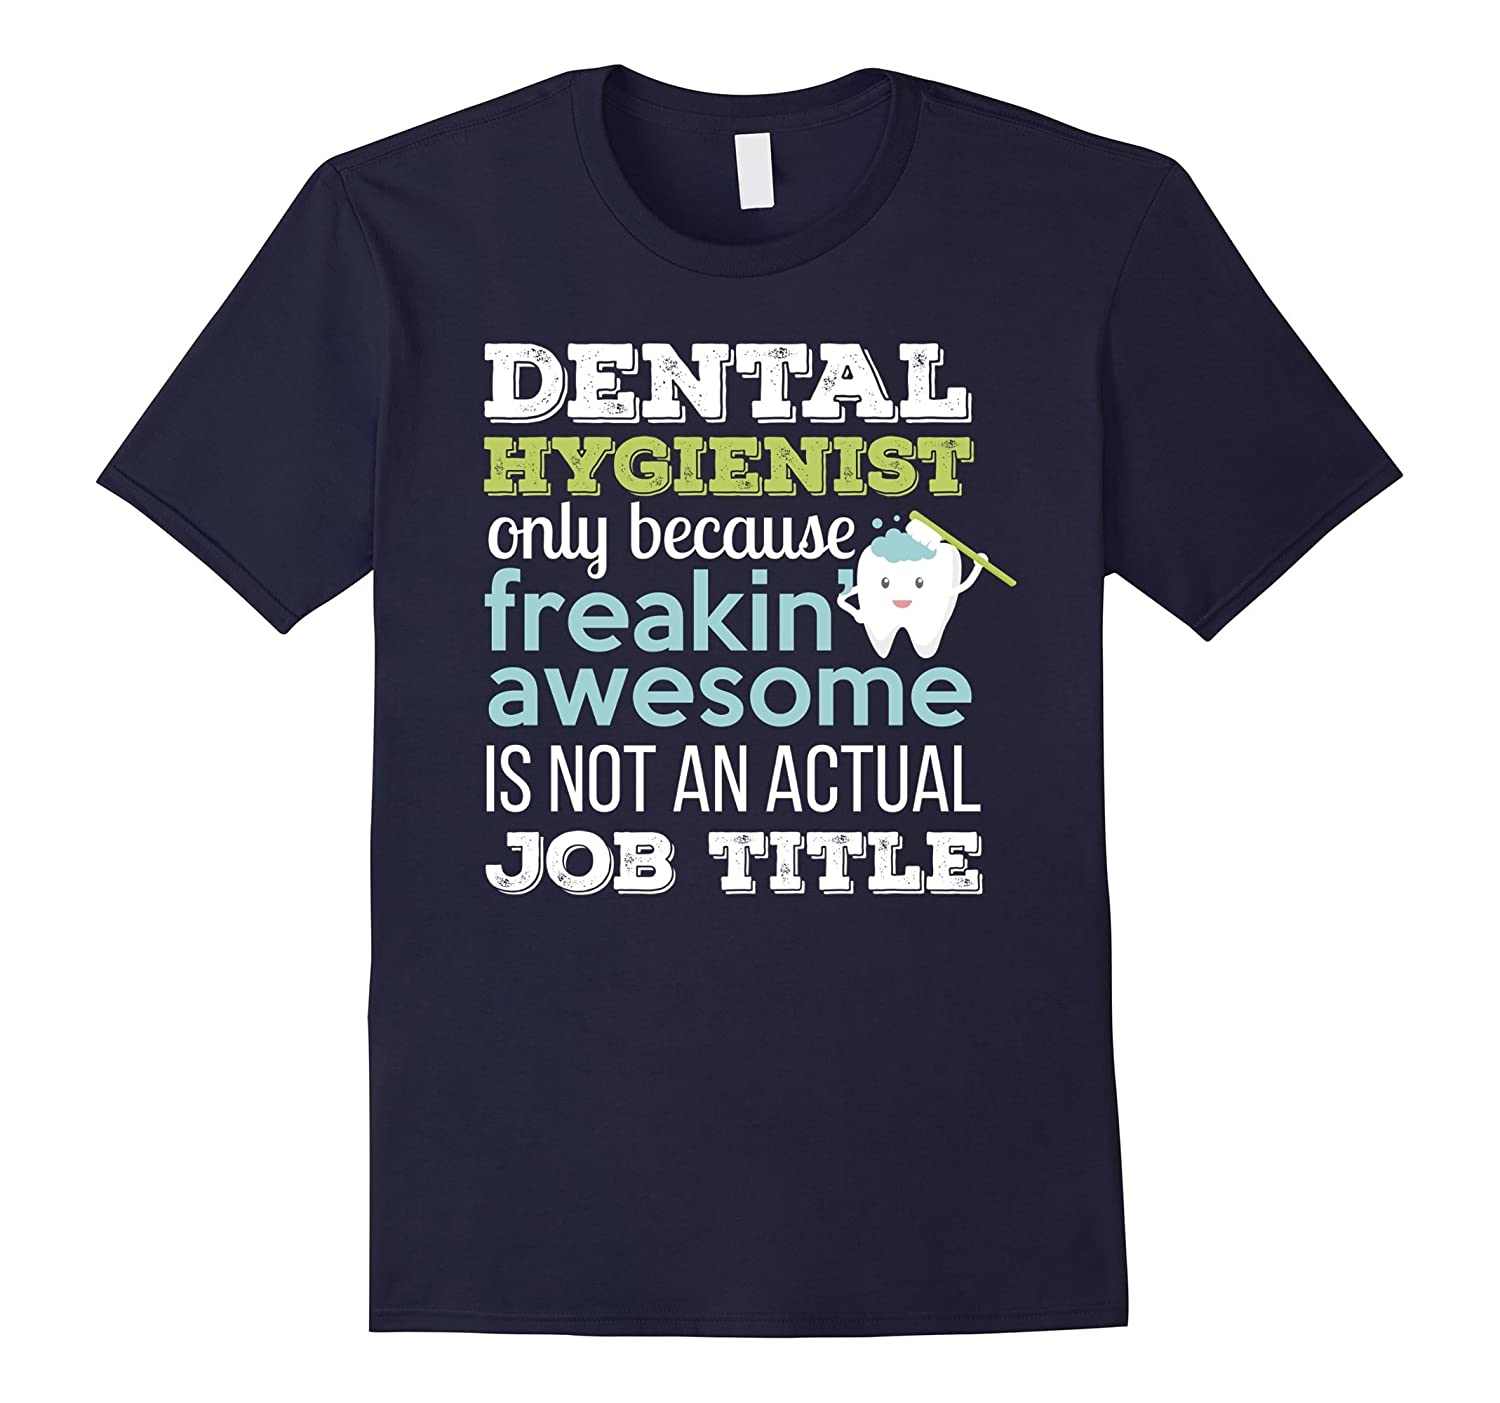 Dental Hygienist T-shirt - Freakin awesome is not an actual-TD